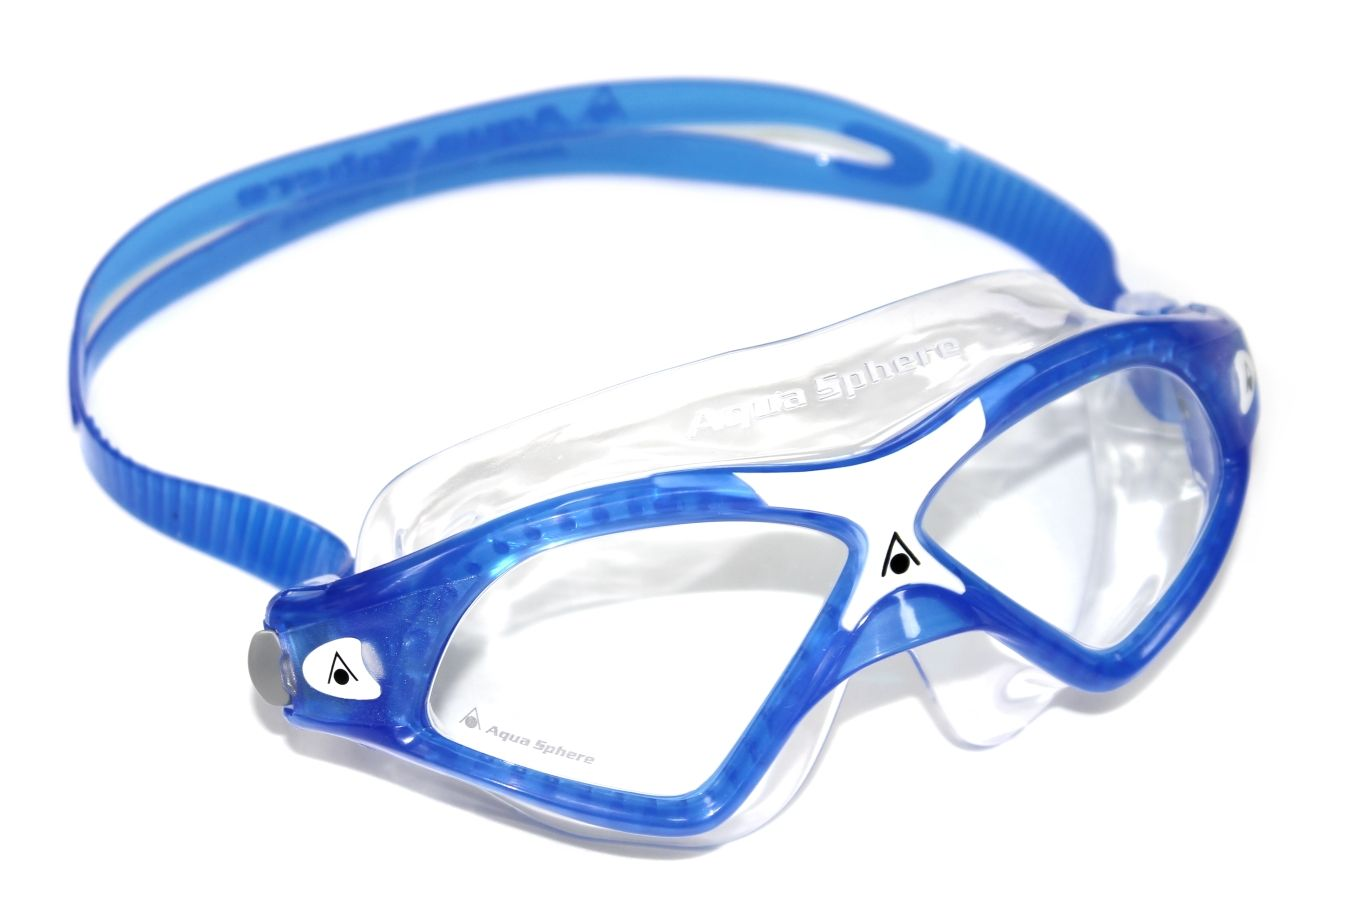 862b0e348182 Aqua Sphere Seal XP2 Clear Lens Swimming Goggles. Tap to expand